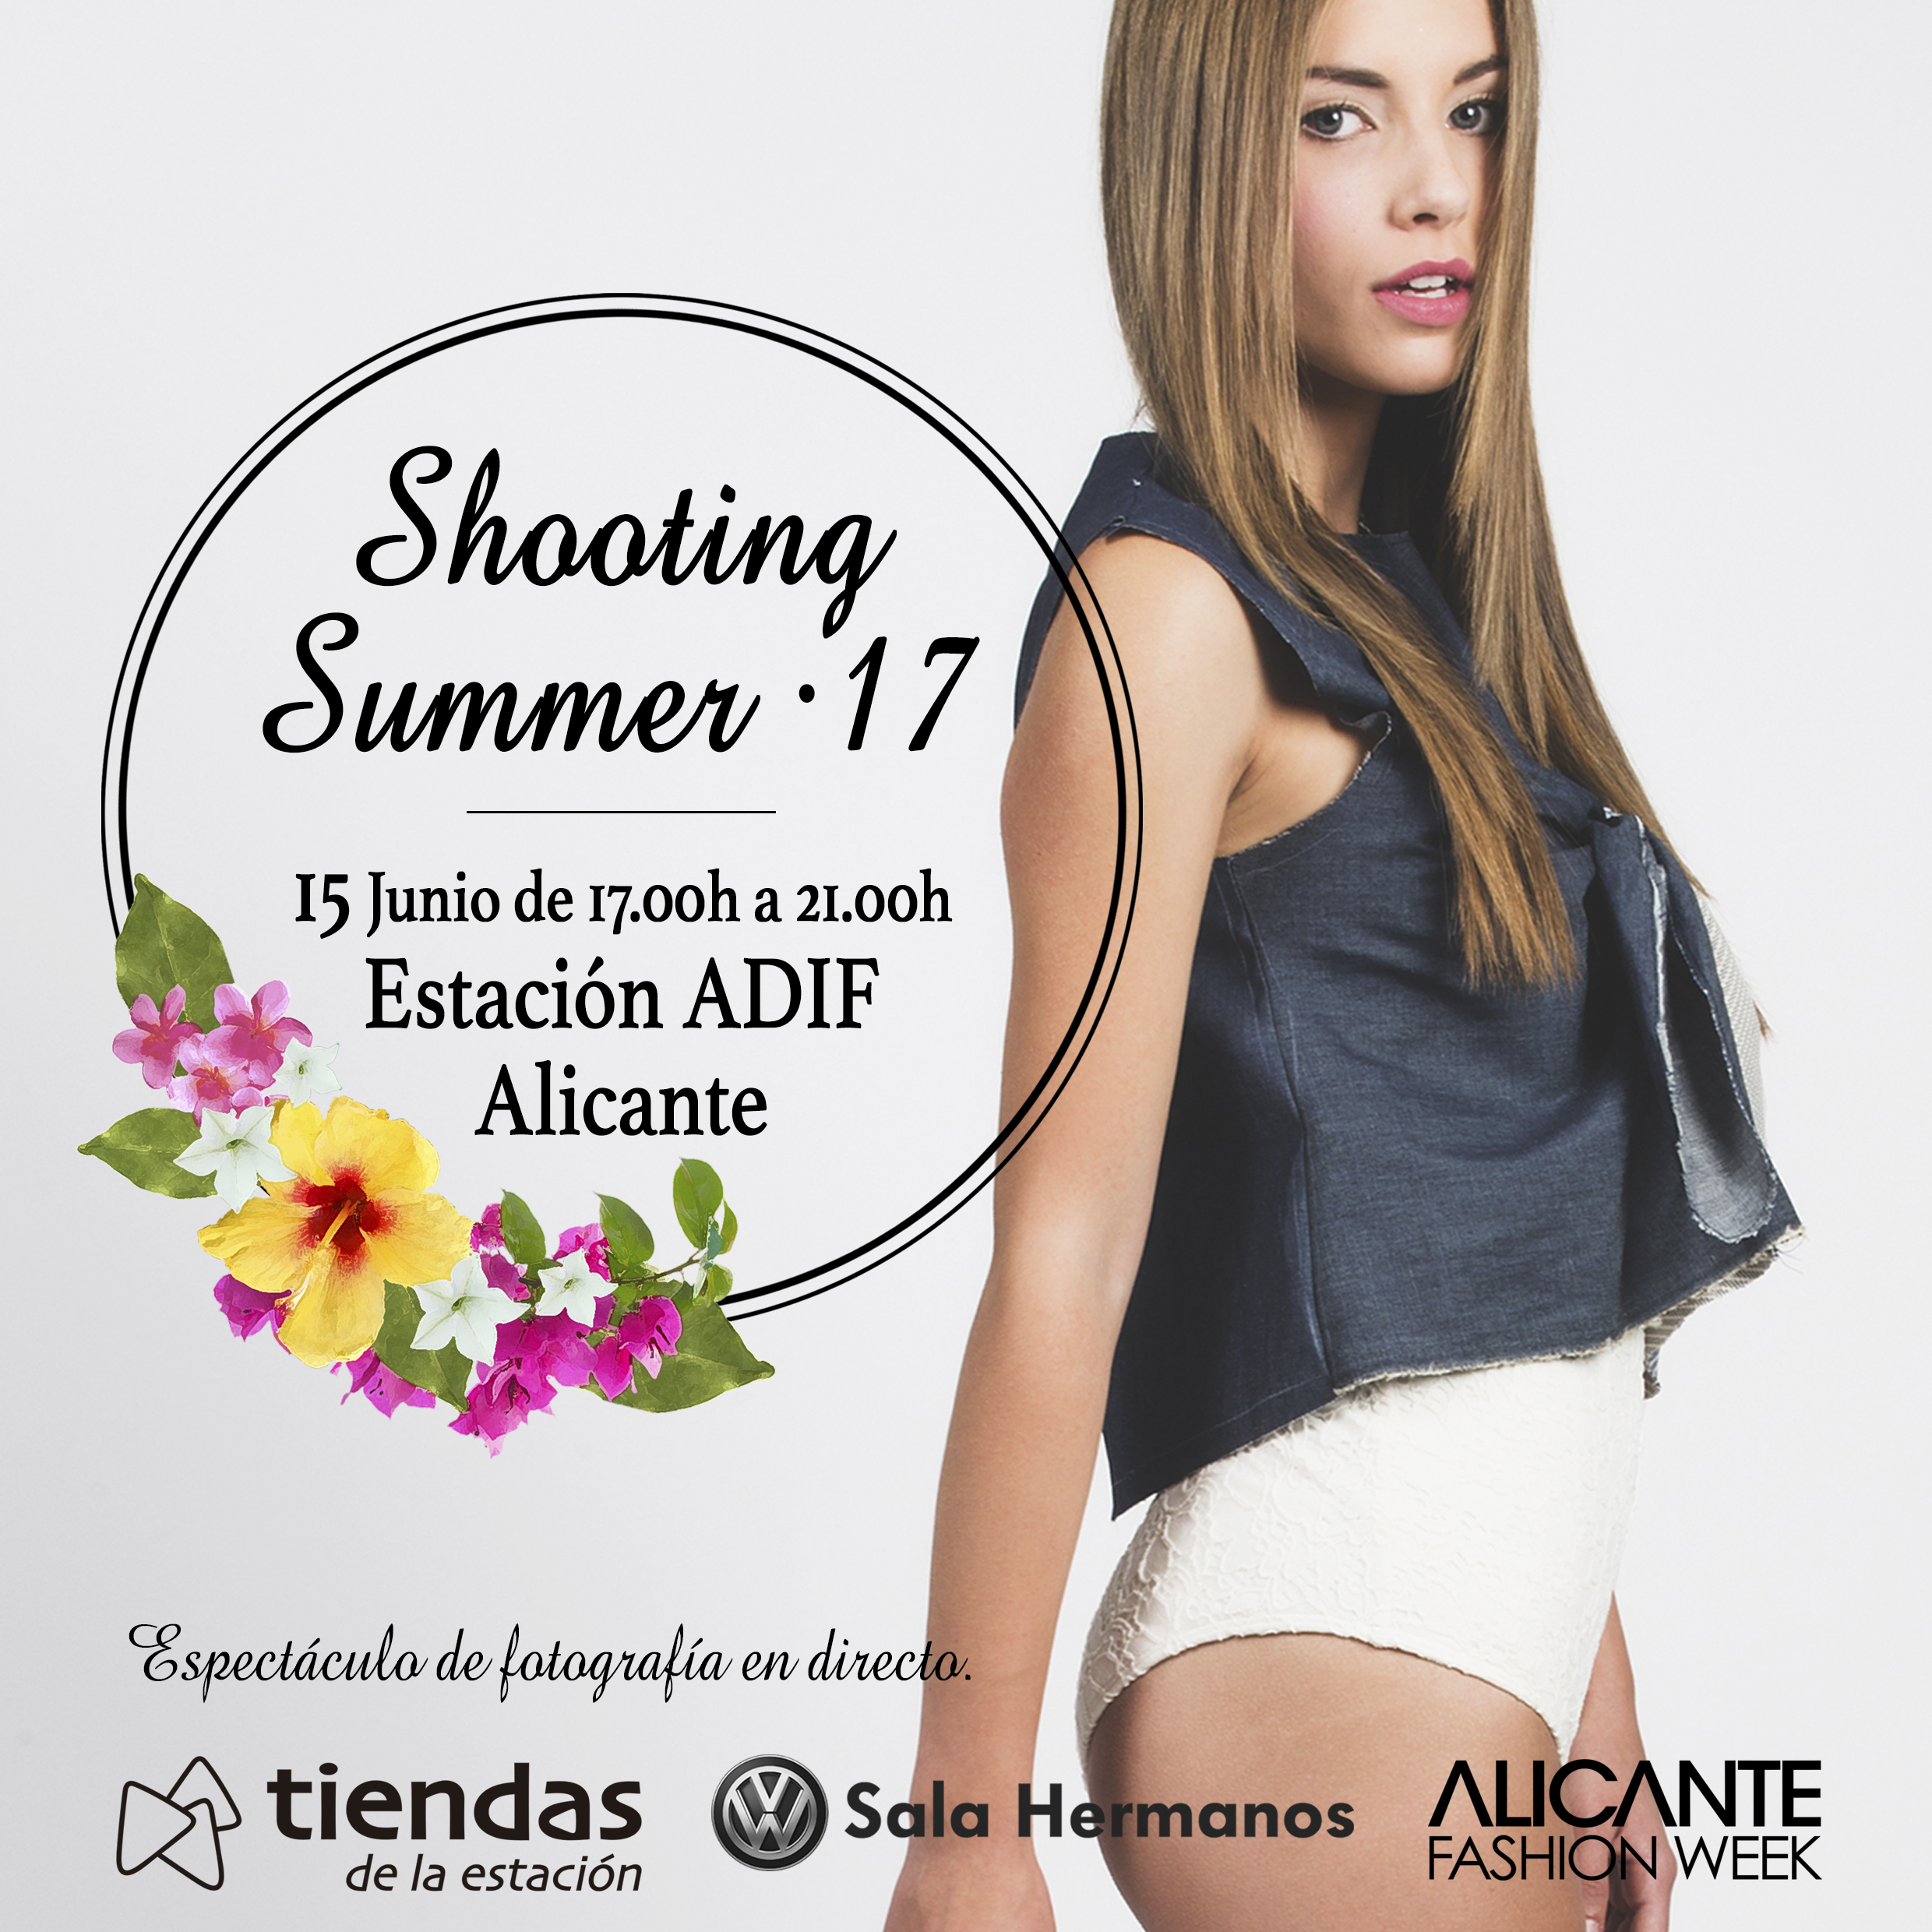 Cartel Shooting Summer17 ADIF, AFW17